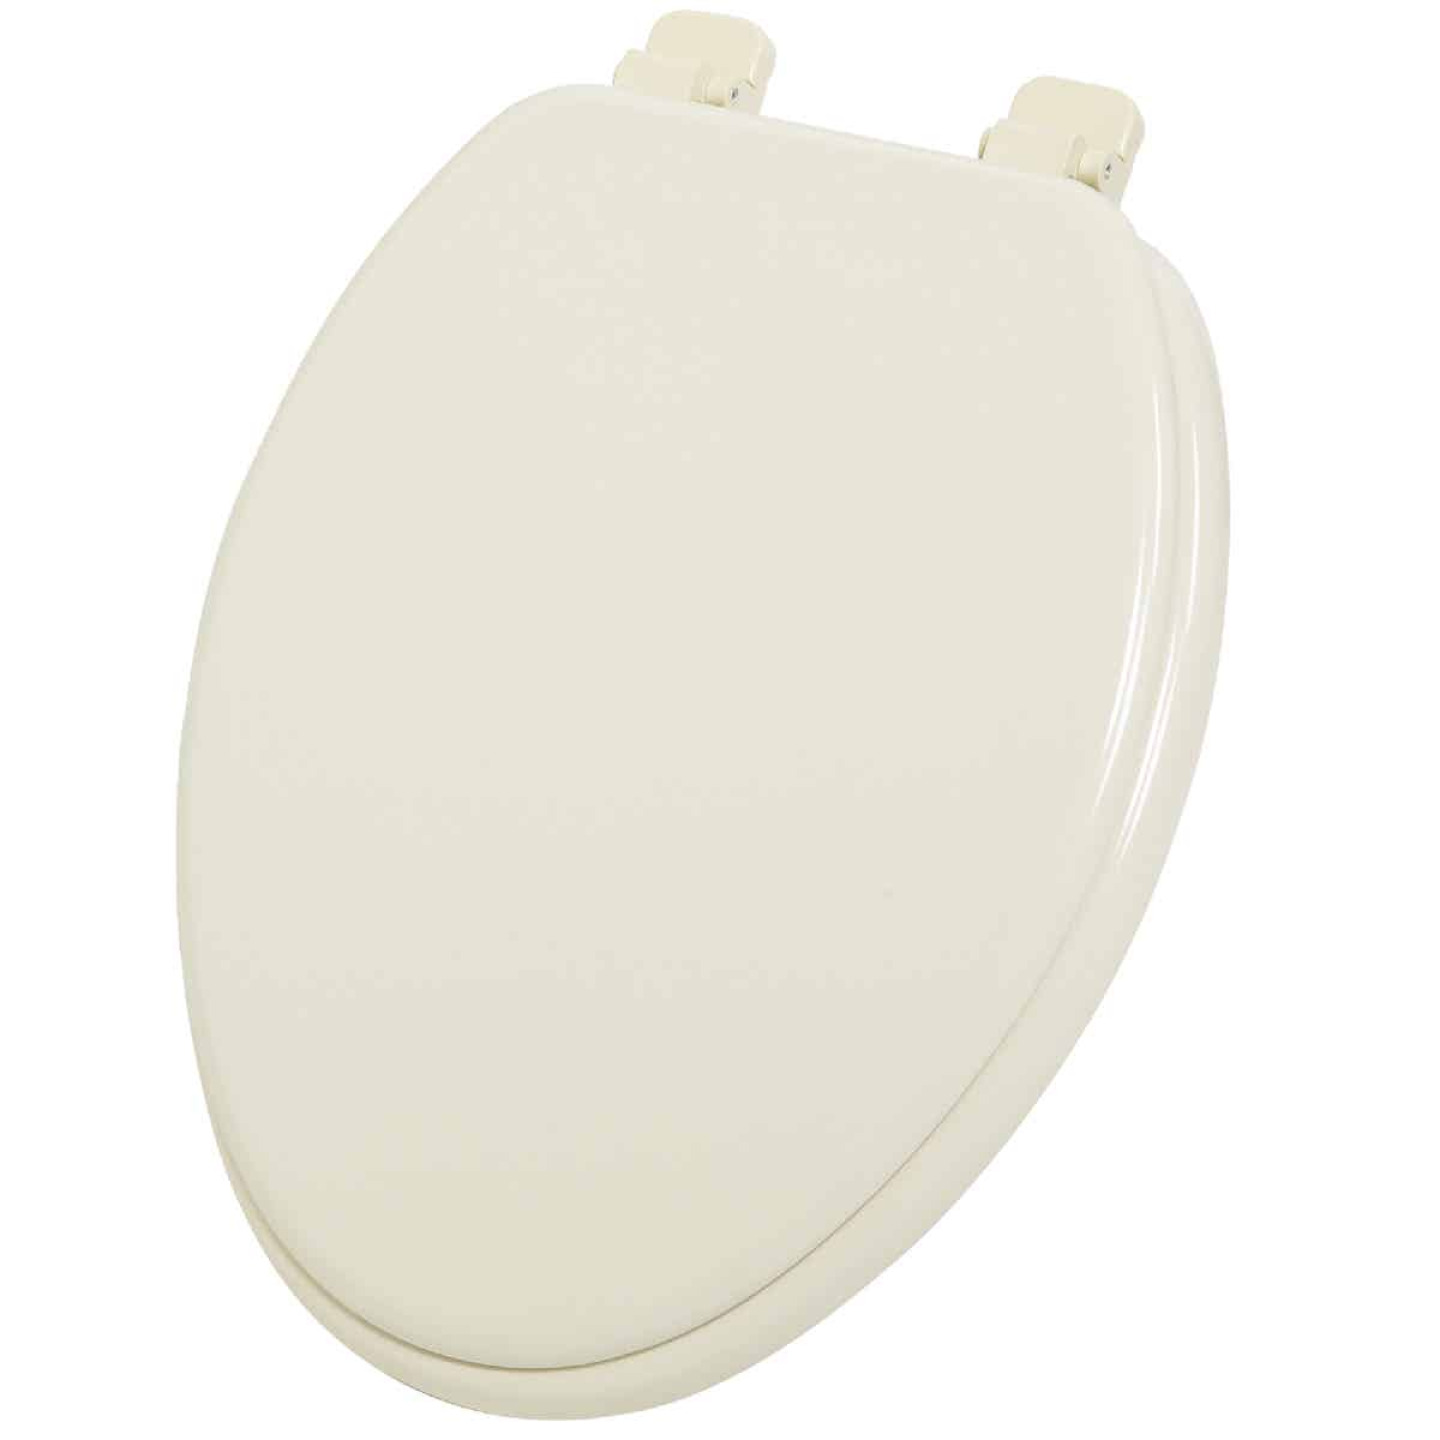 Home Impressions Elongated Closed Front Bone Wood Toilet Seat Image 1